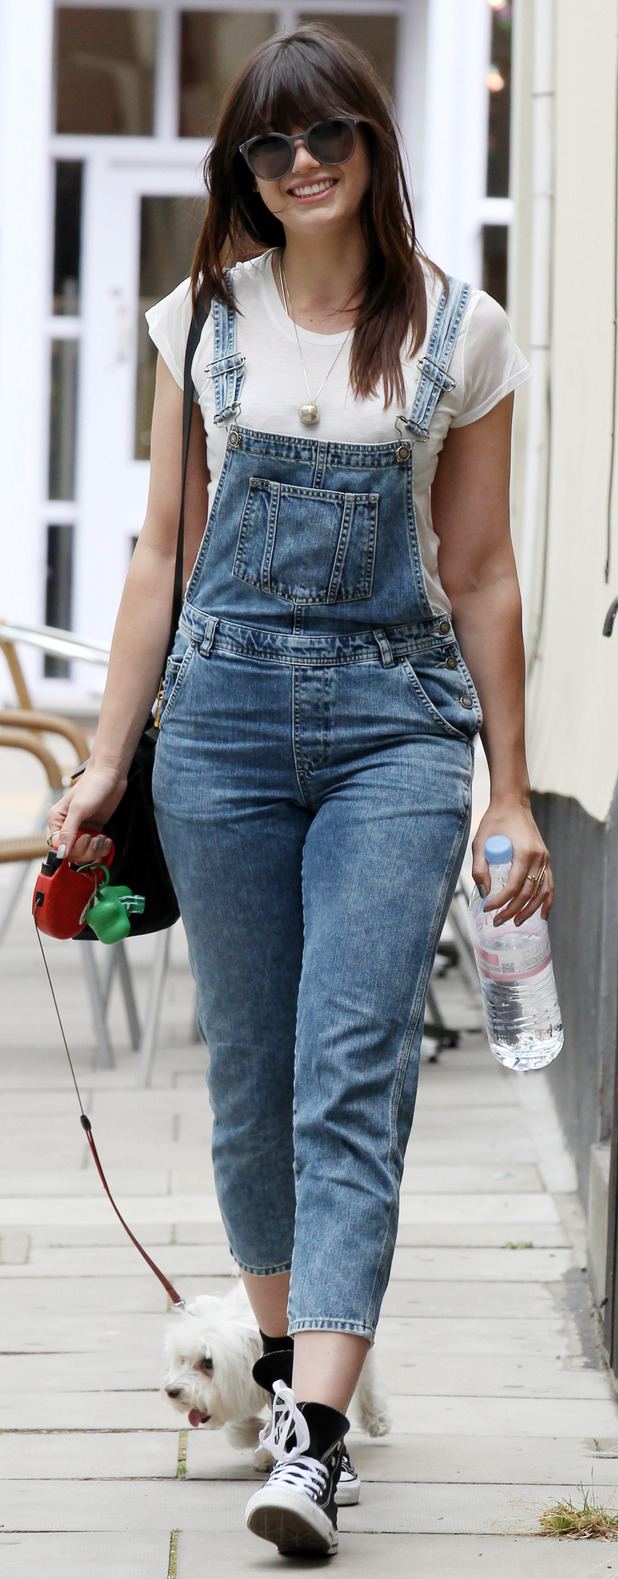 Daisy Lowe walking dog Monty in Primrose Hill wearing denim dungarees, 7th July 2015